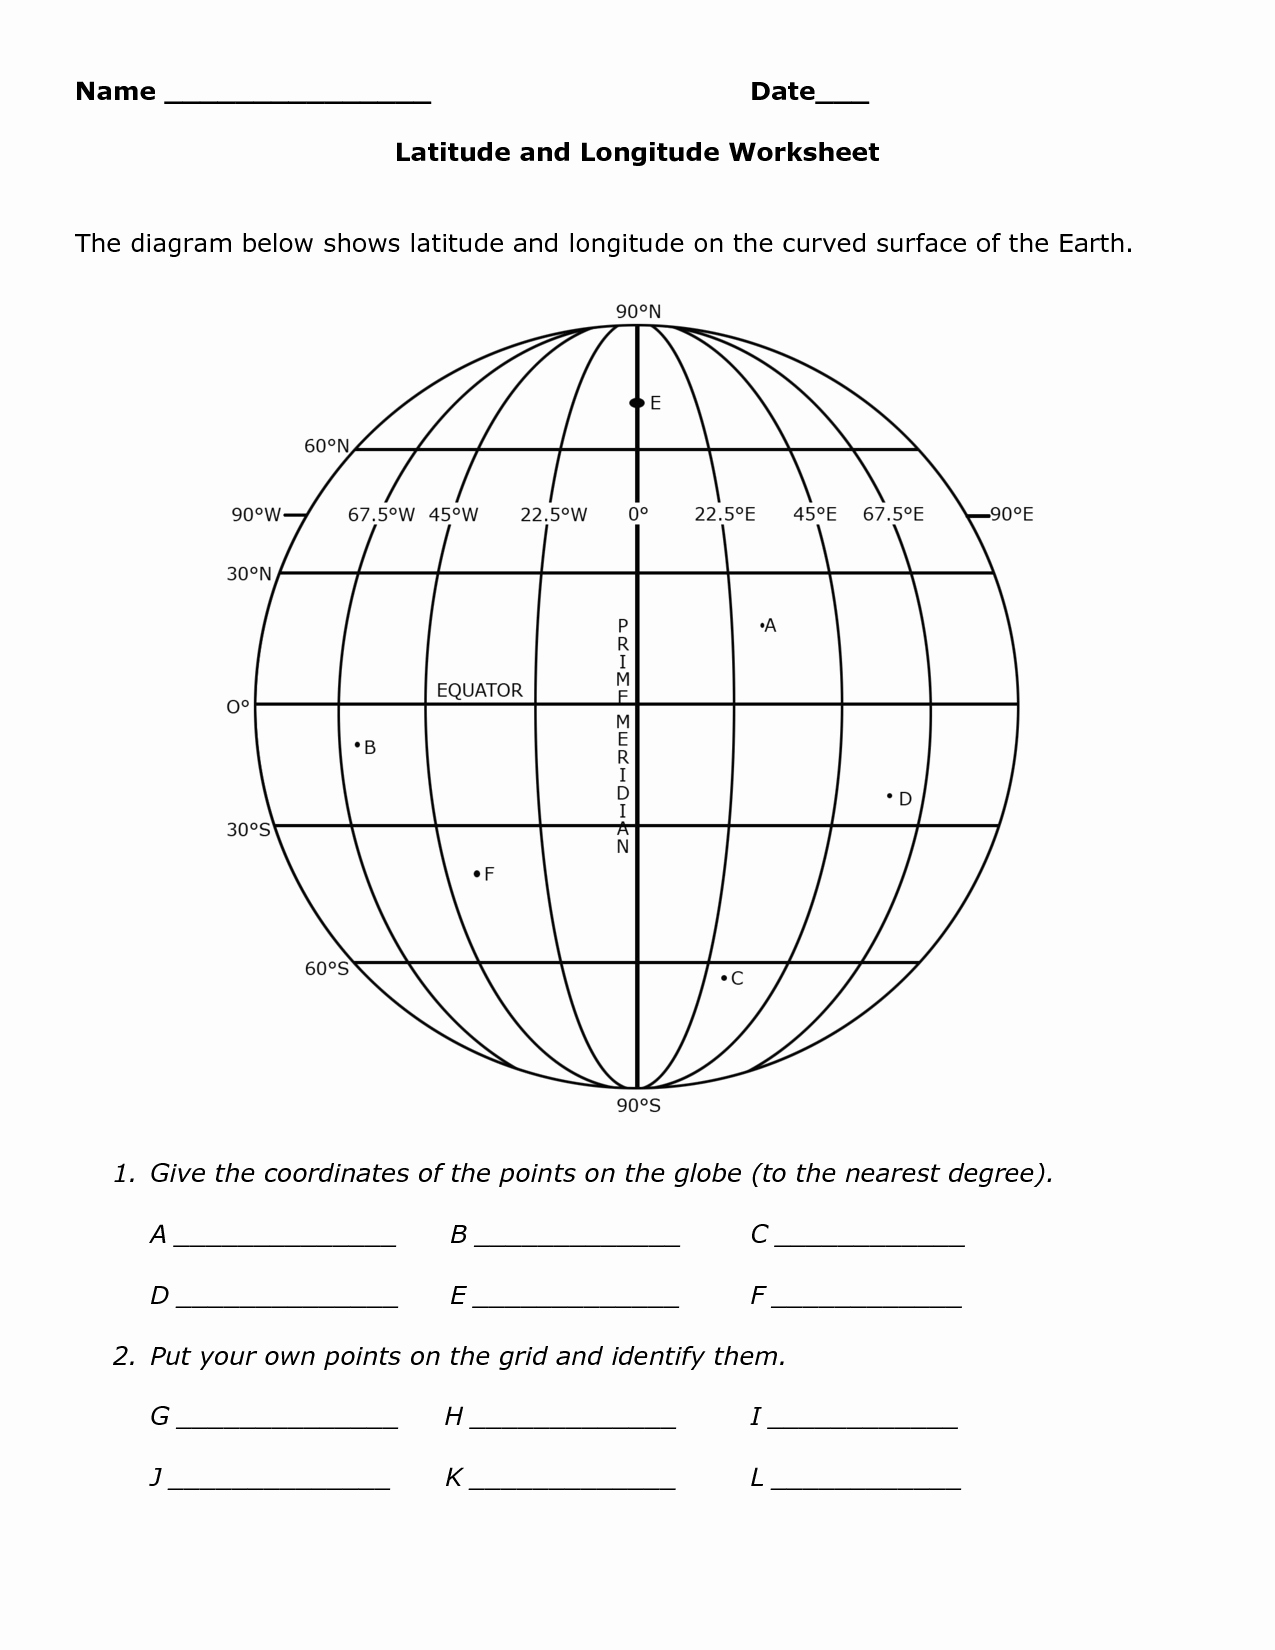 Longitude and Latitude Worksheet Elegant Worksheet Latitude and Longitude Practice Worksheets